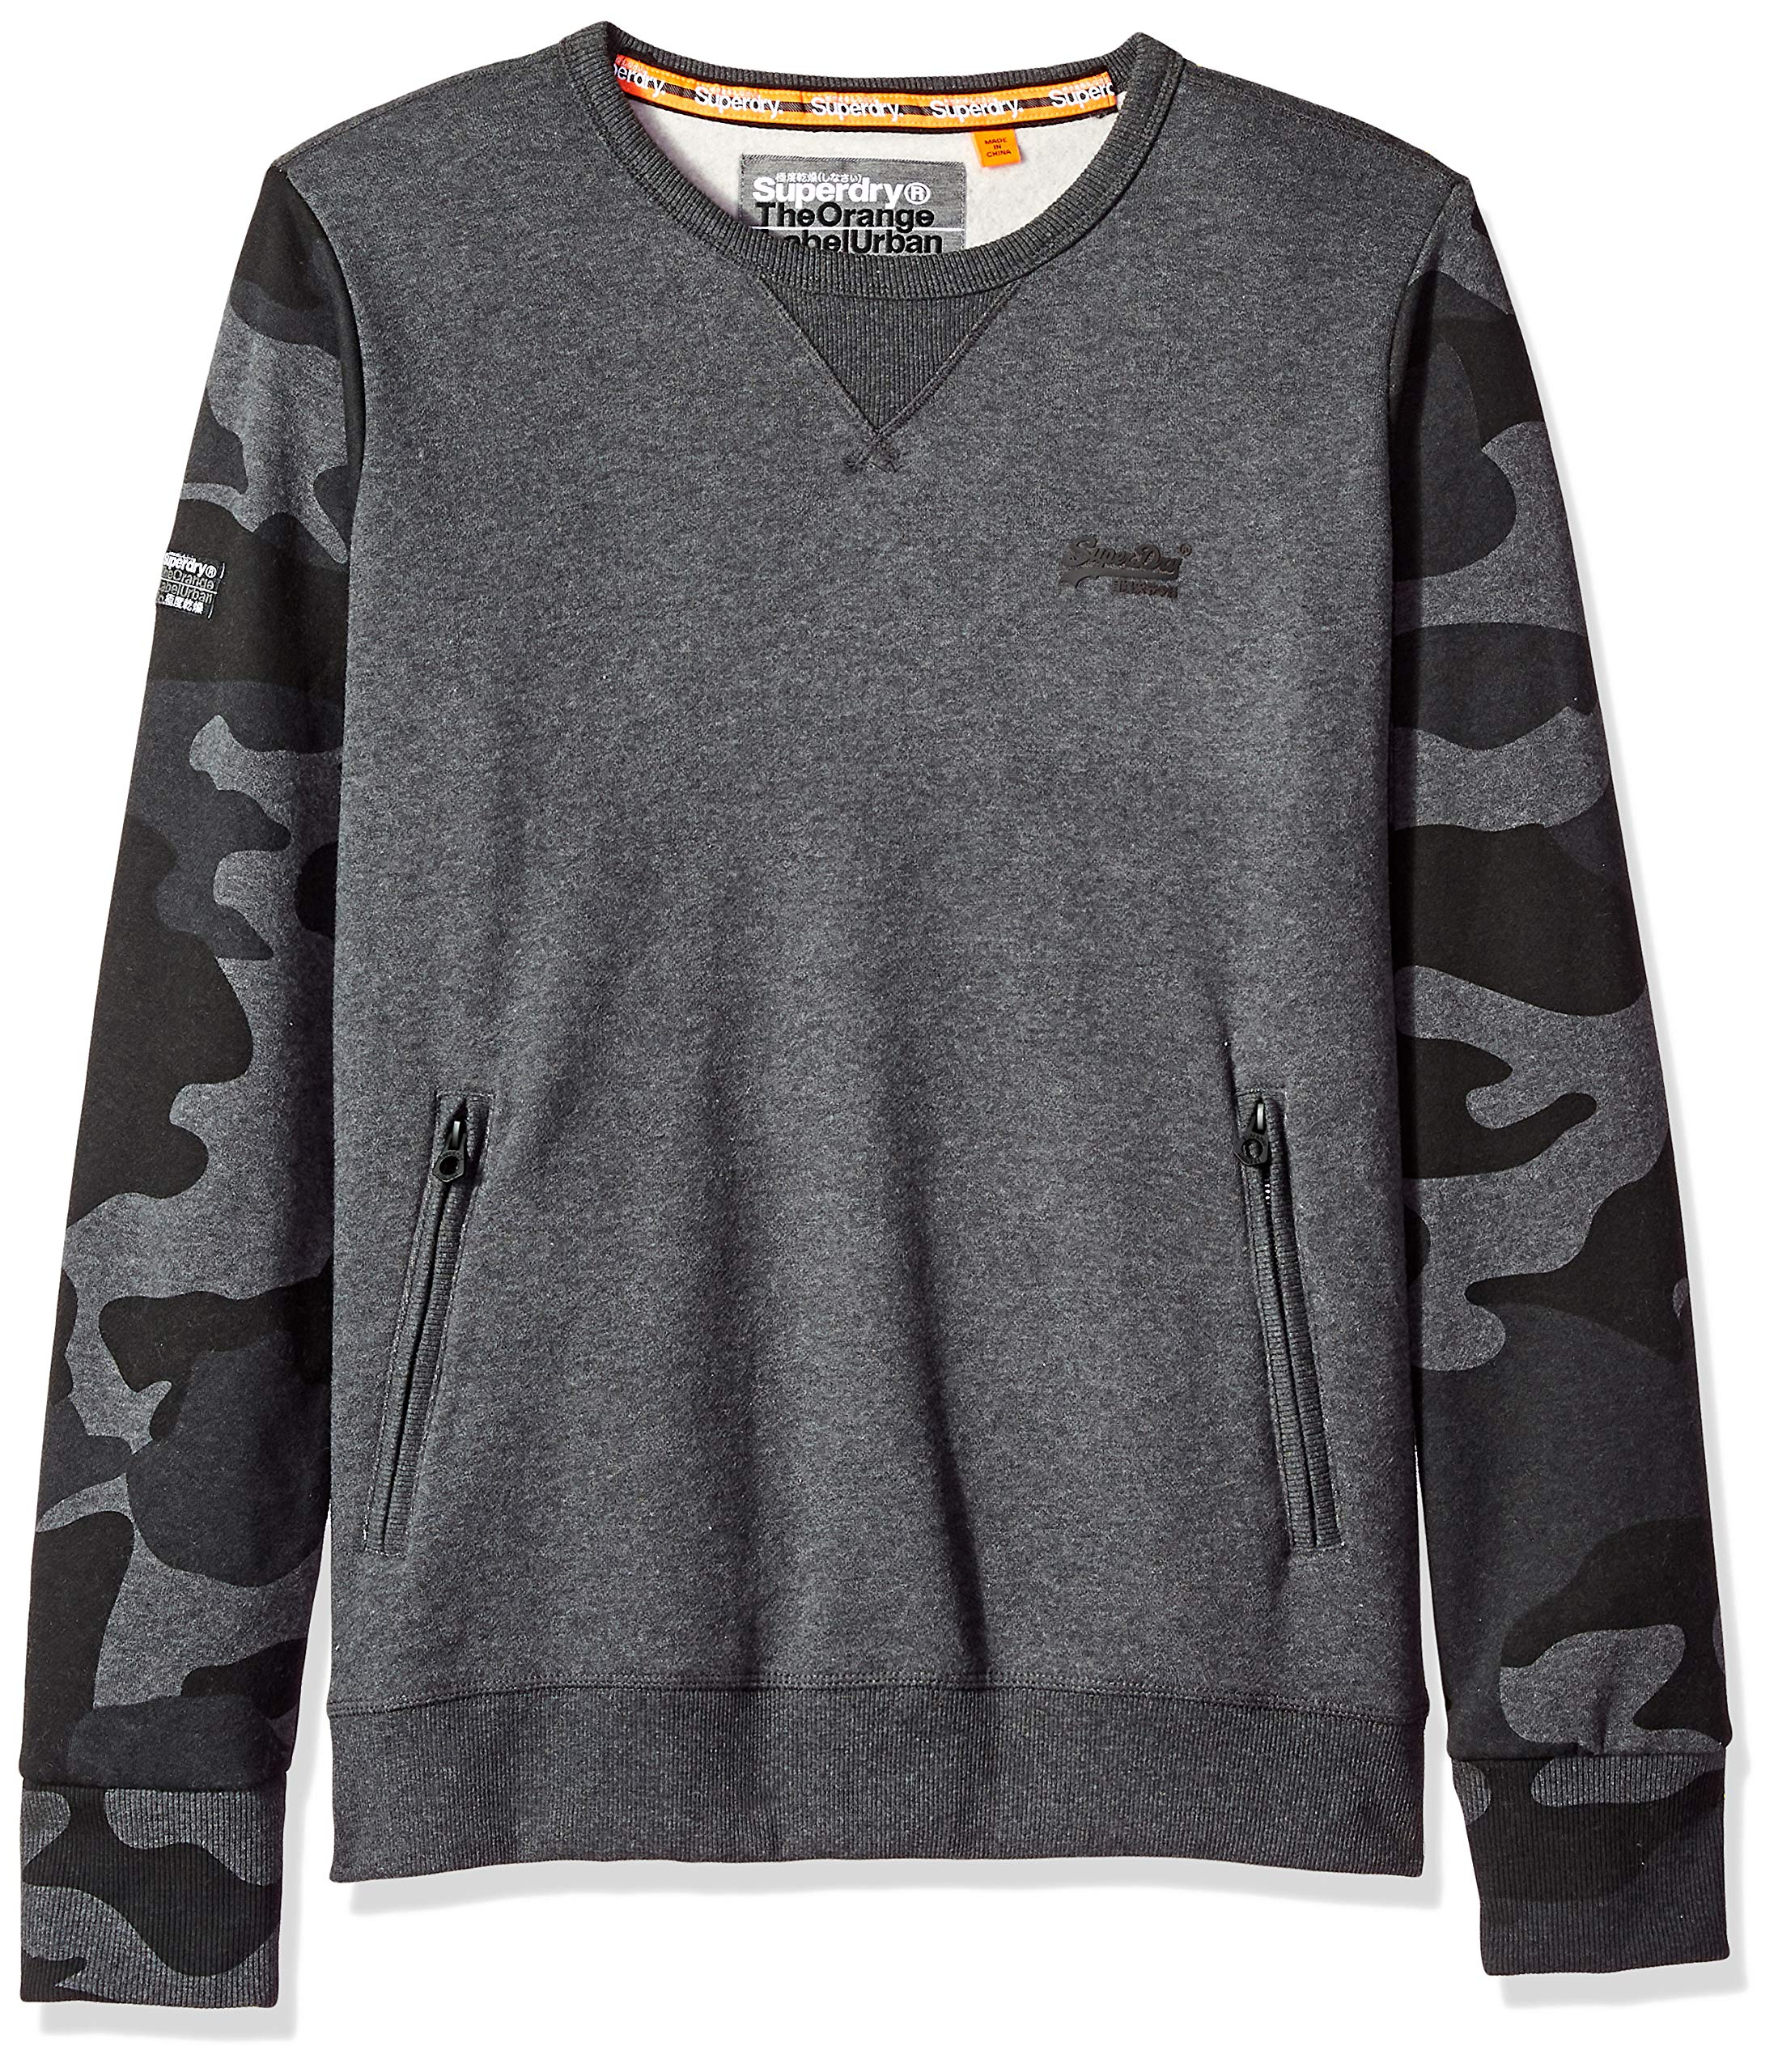 039ac1614 Amazon.com: Superdry USA: SWEATERS/ HOODIES/CREW